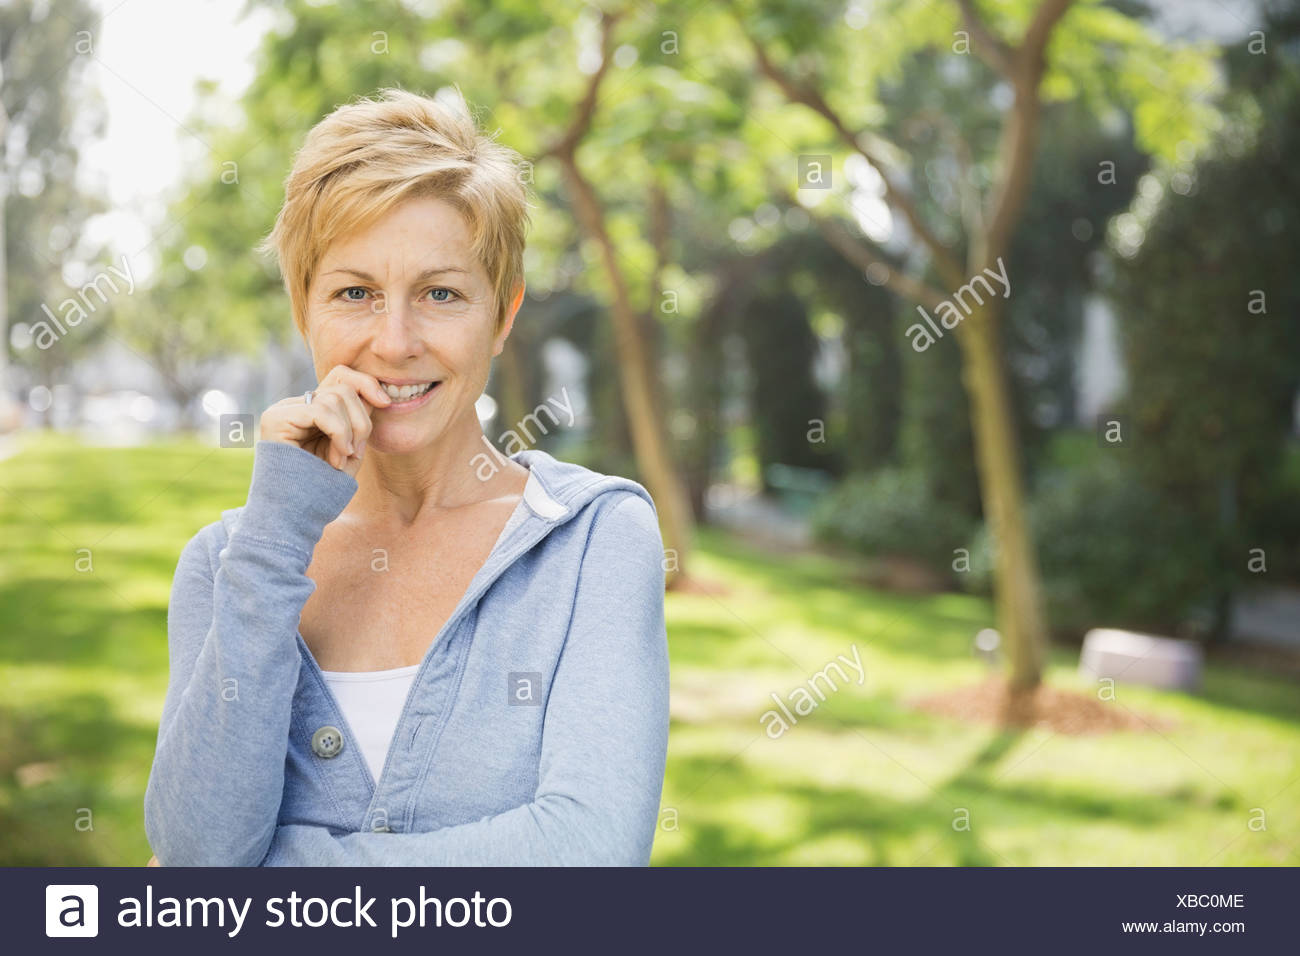 Portrait of woman standing outdoors - Stock Image